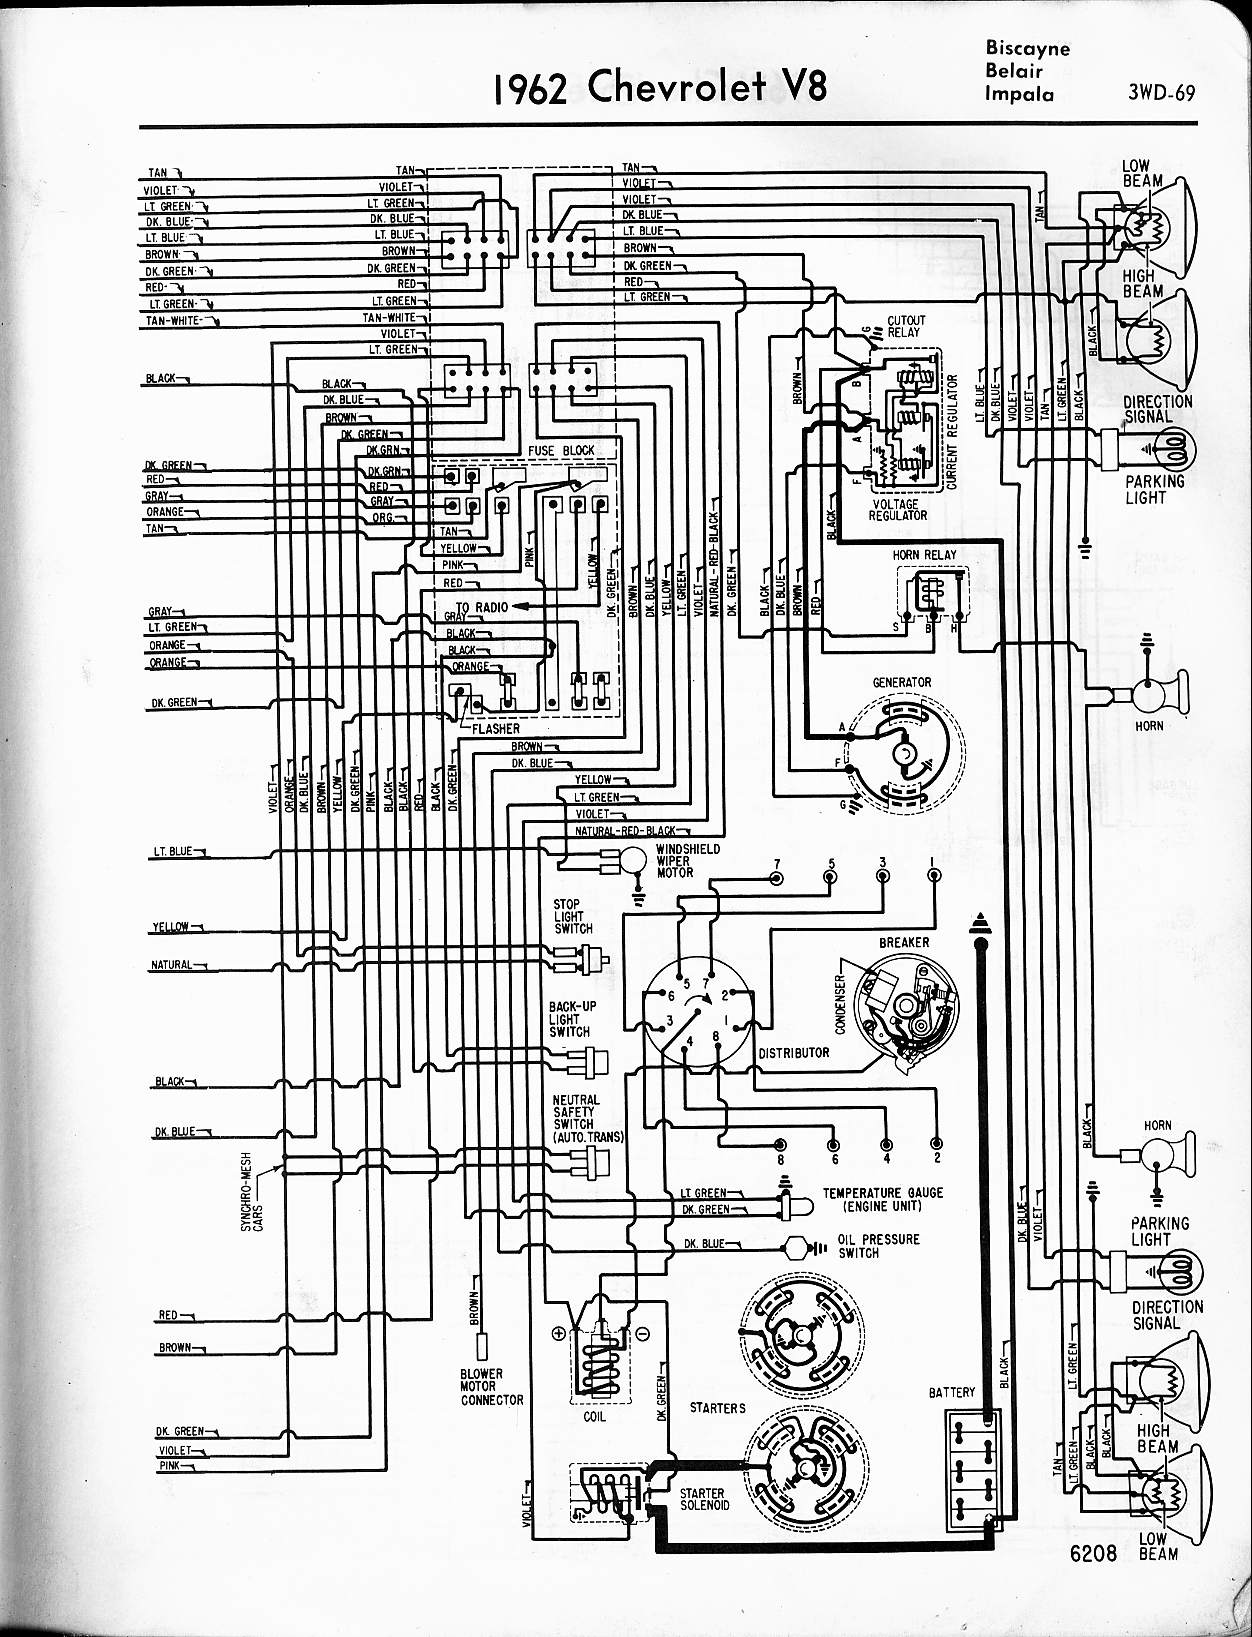 1962 Impala Wiring Diagram Just Wiring Data Grand Prix Wiring Schematic 1969  Impala Wiring Diagram Schematic